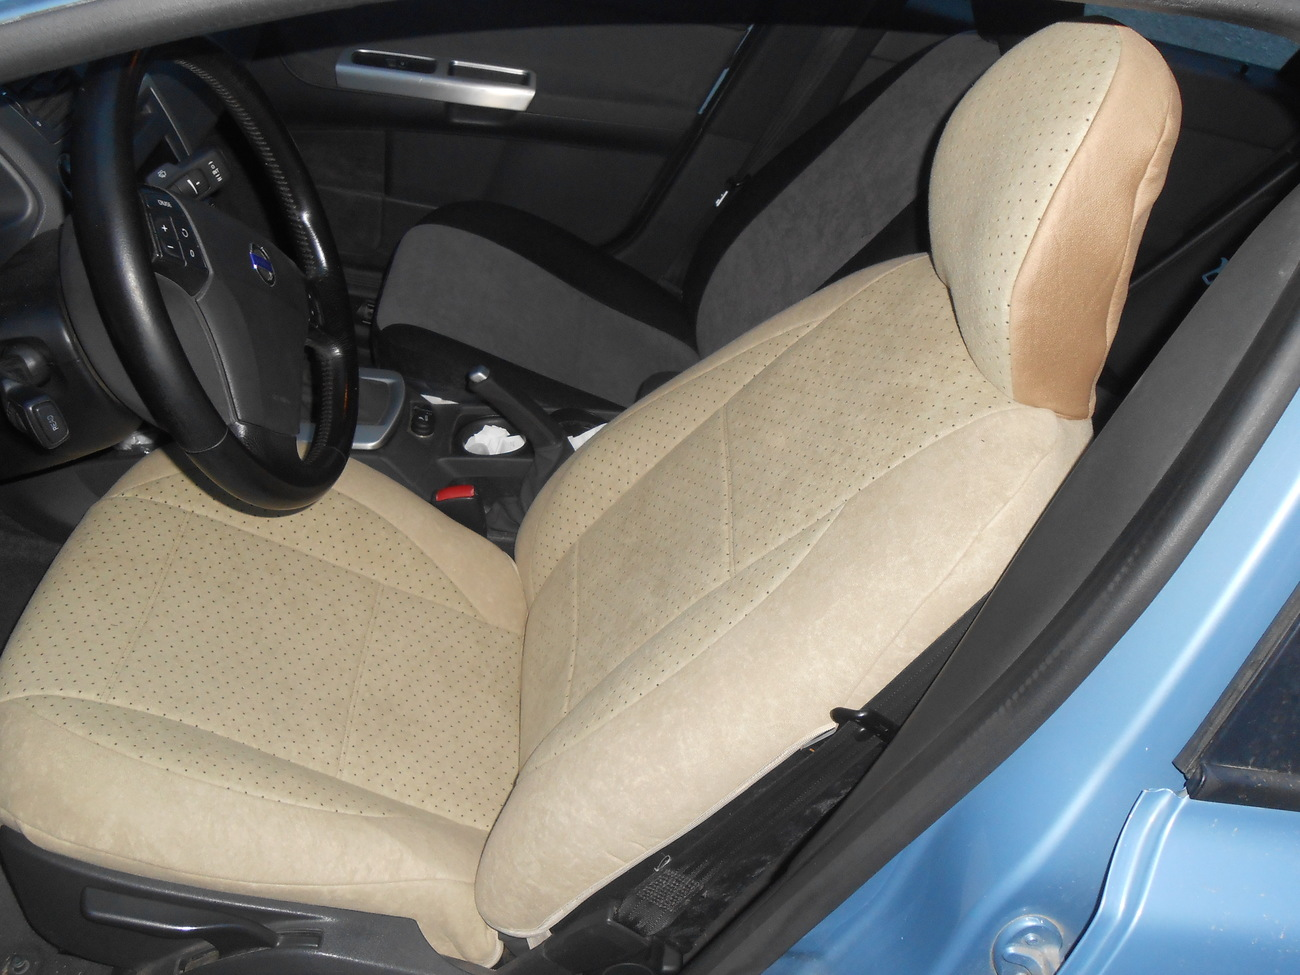 volvo xc60 accessories seat covers. Black Bedroom Furniture Sets. Home Design Ideas